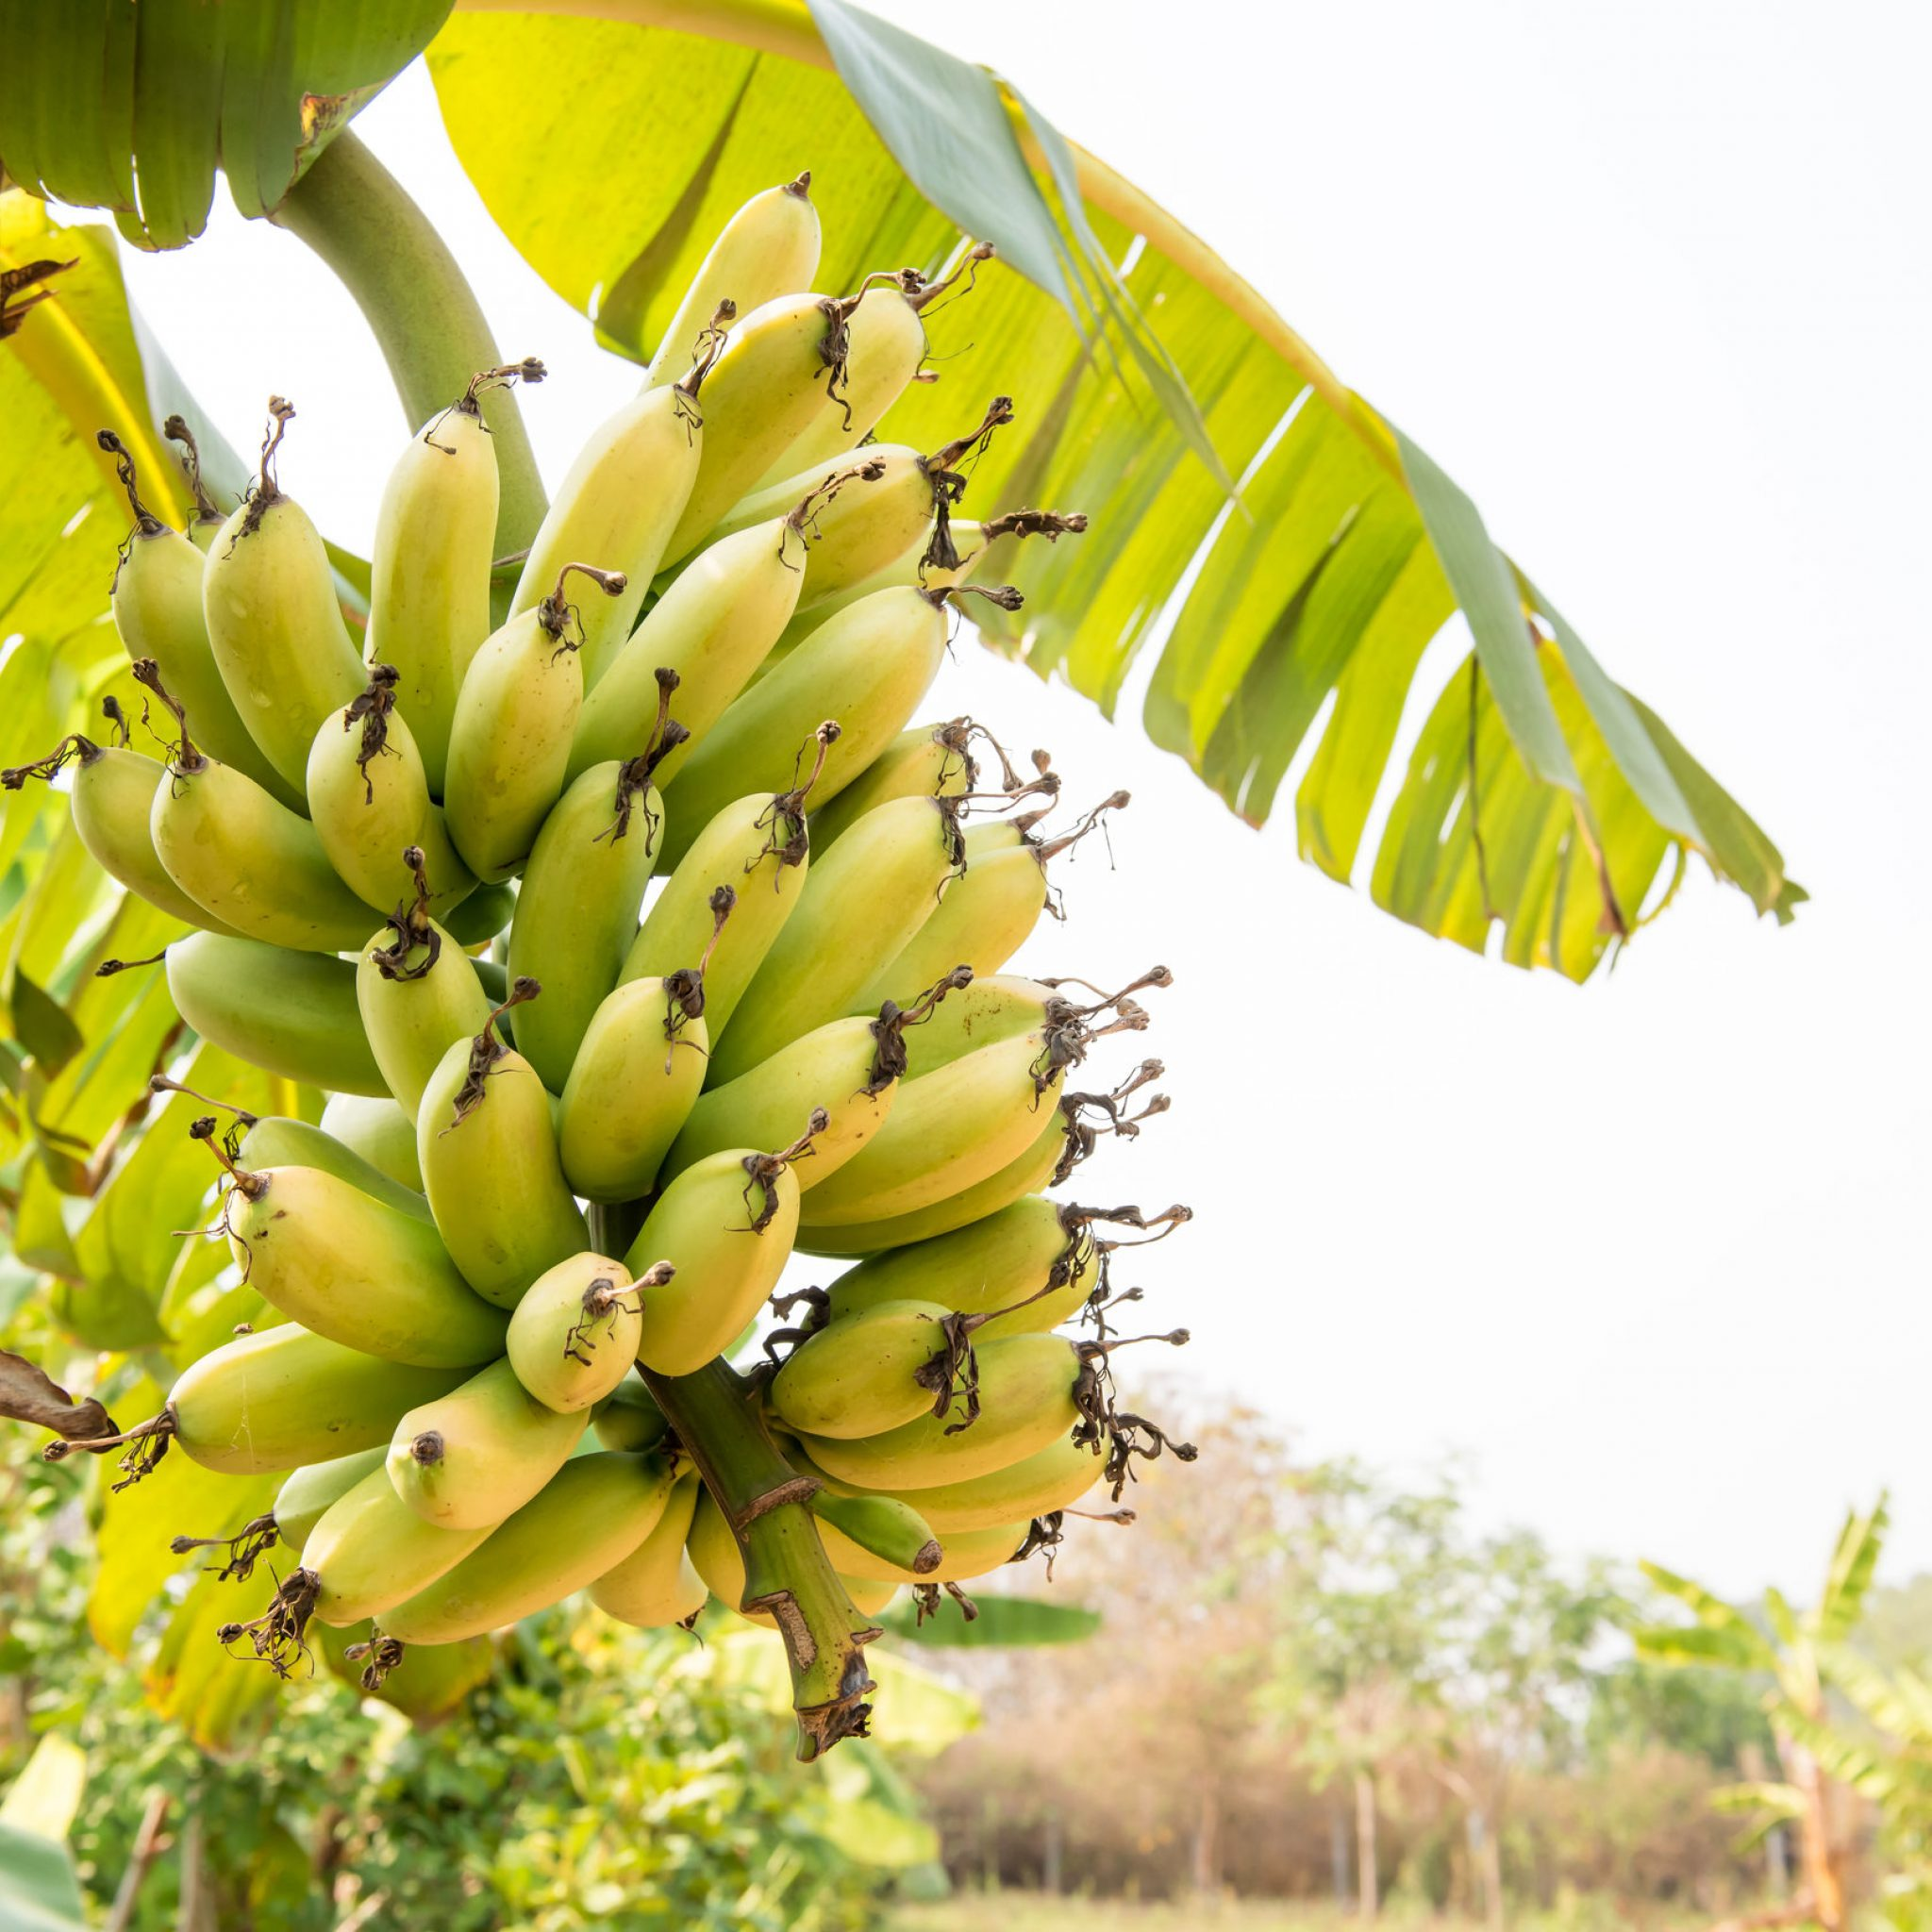 Increasing banana production with precision agriculture in